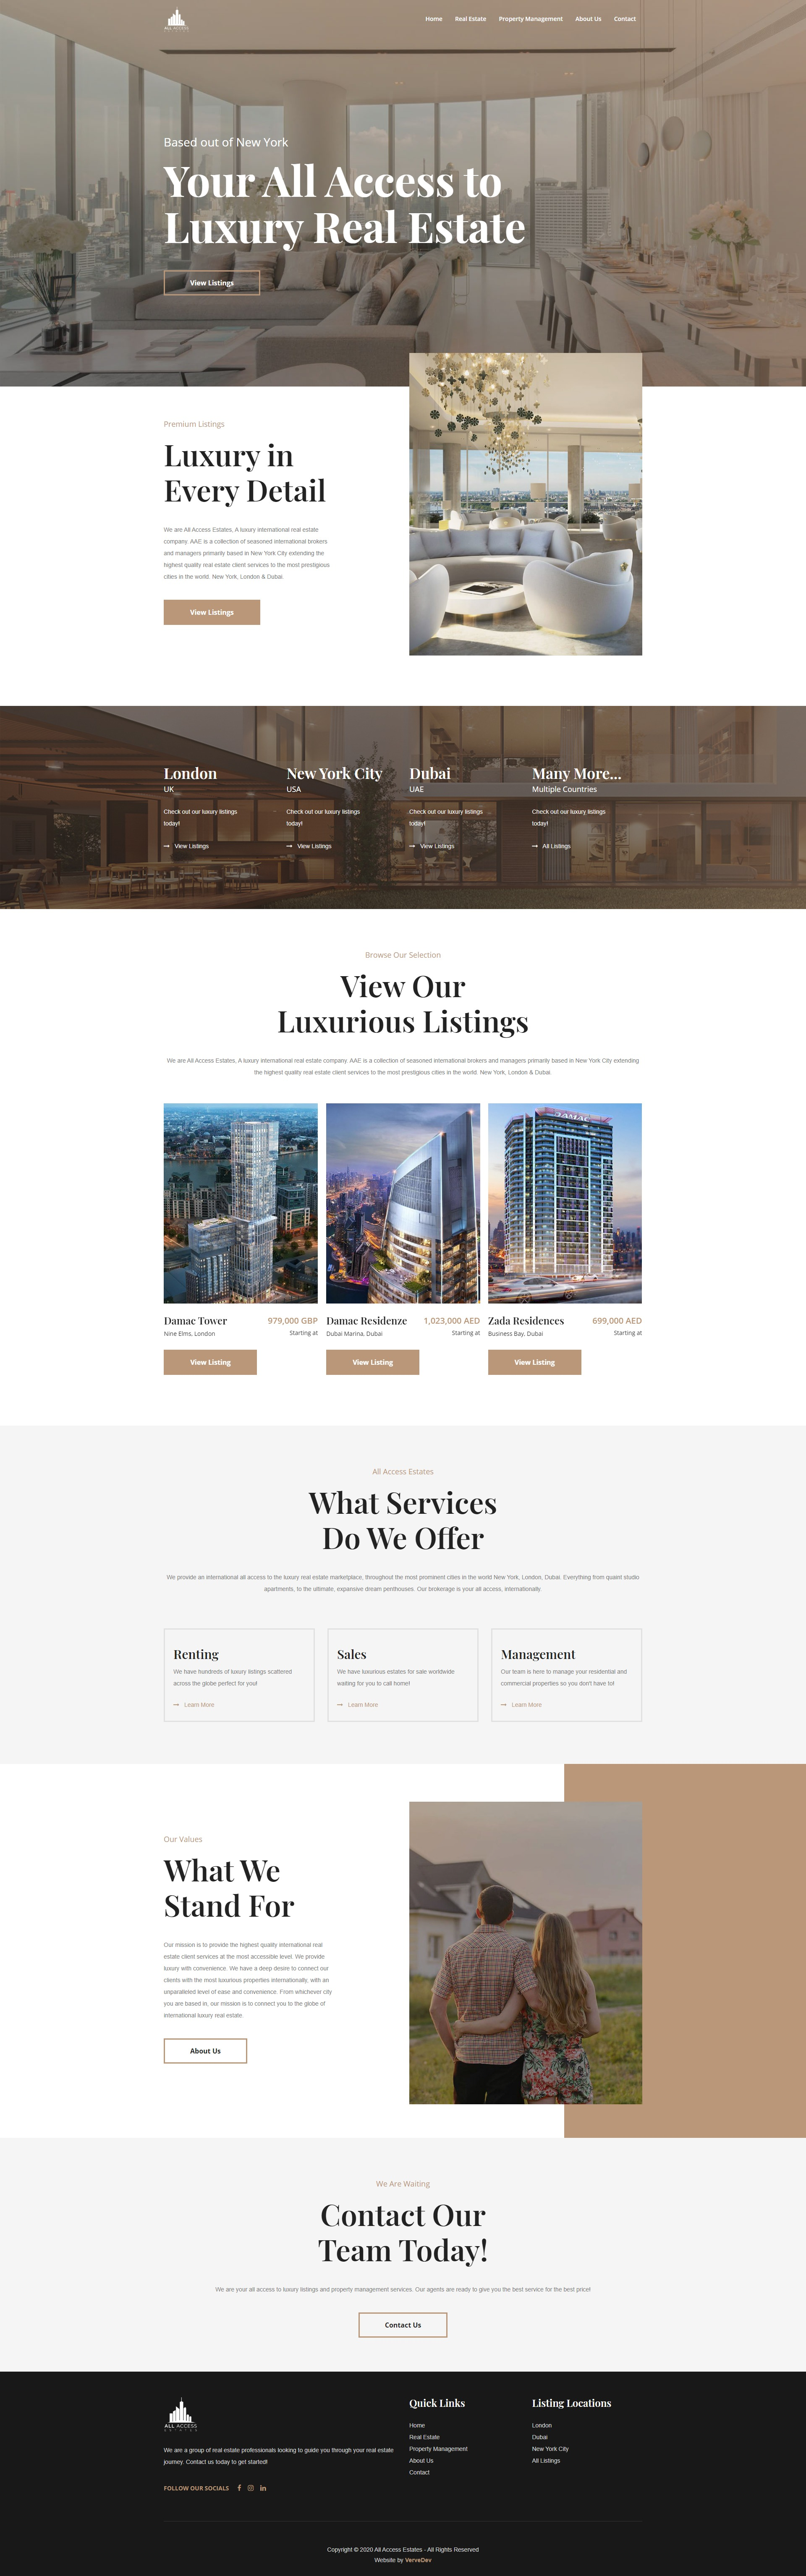 vaughan-website-design-portfolio-2